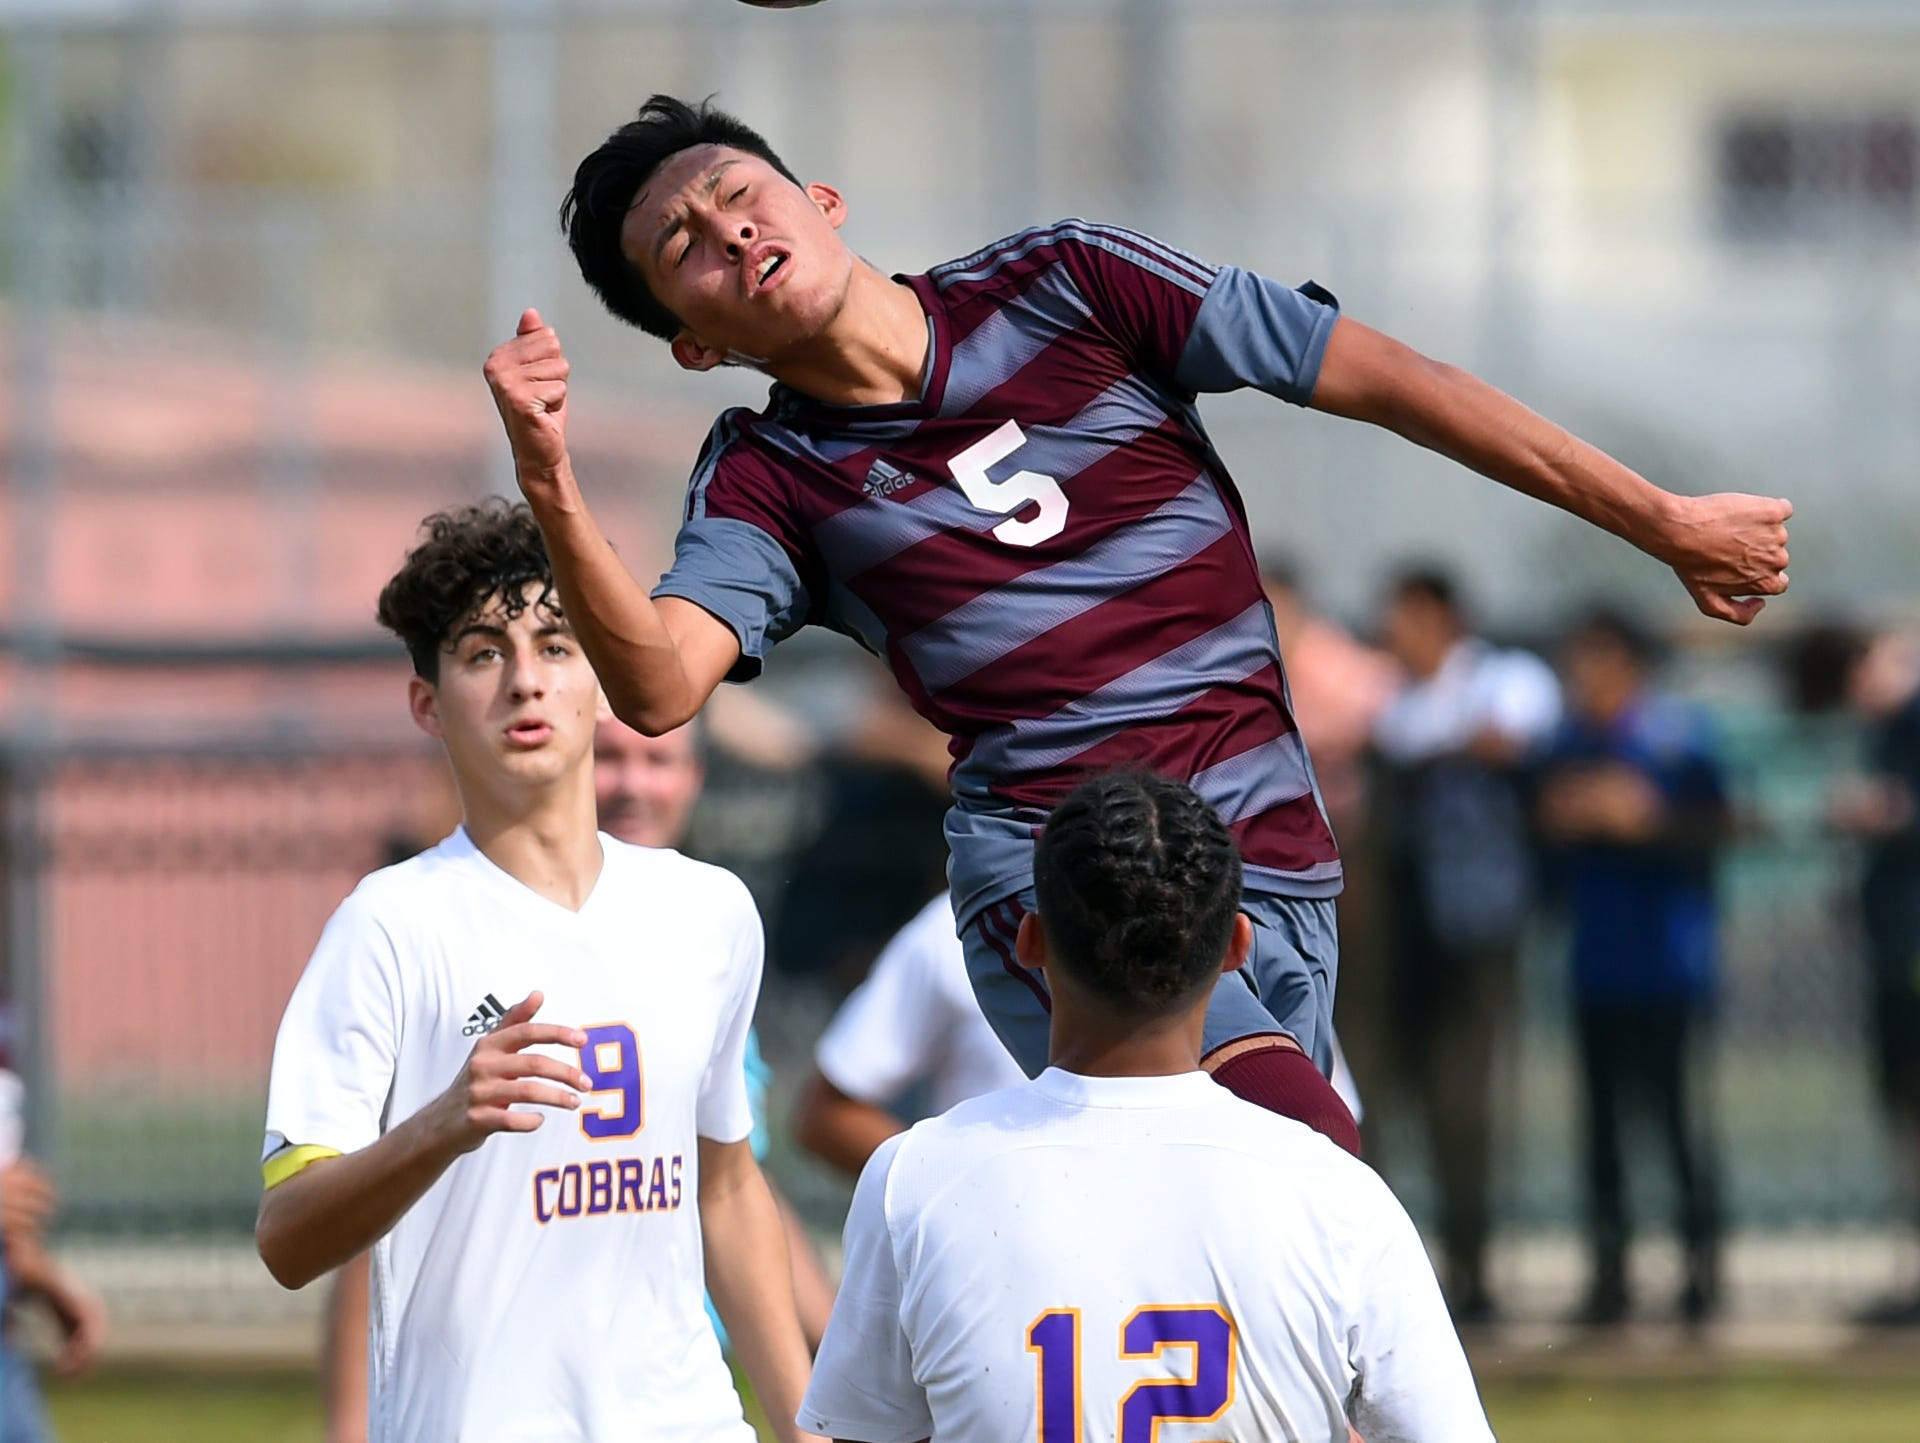 Fort Pierce Westwood High School's Miguel Guadarrama (5) goes up for a header in front of the goal as Fort Pierce Central's Eric Rahman (9) and Kevin Ramos (12) defend Wednesday, Jan. 10, 2018 during a game in Fort Pierce. Westwood won the match 3-1. To see more photos, visit TCPalm.com